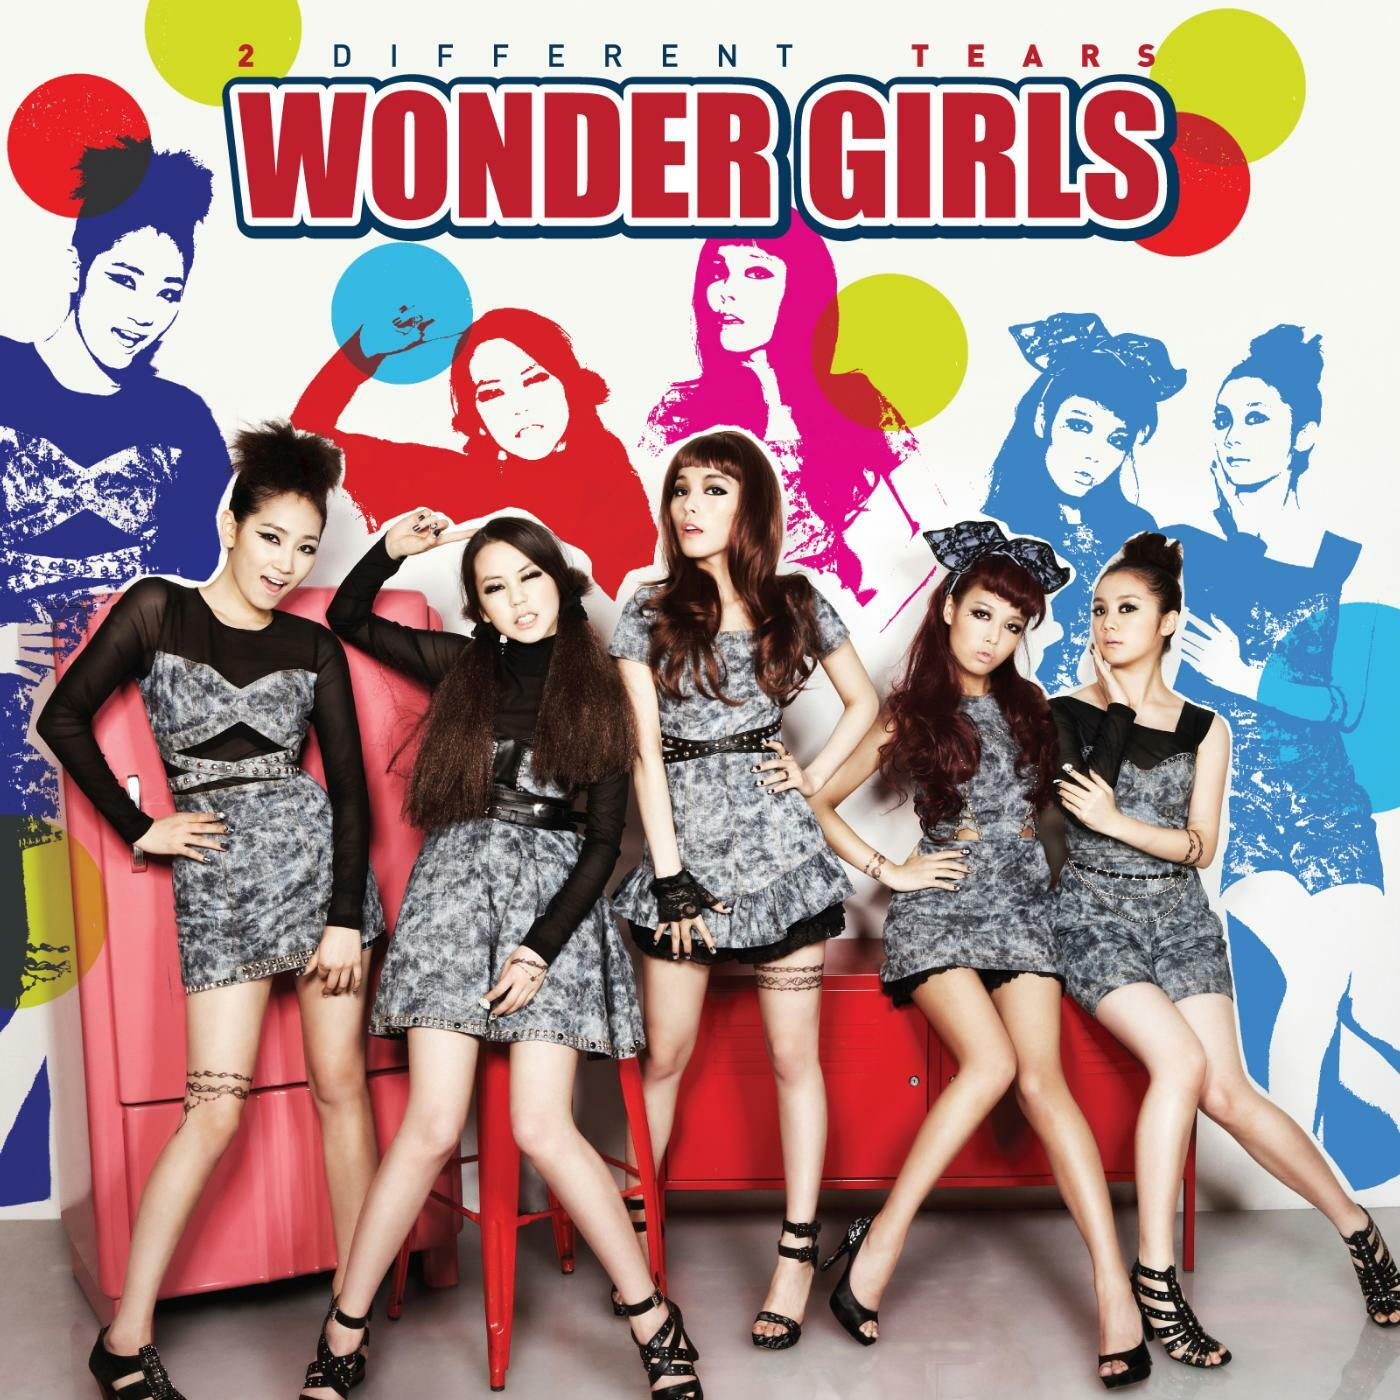 Stream Free Songs by Wonder Girls & Similar Artists